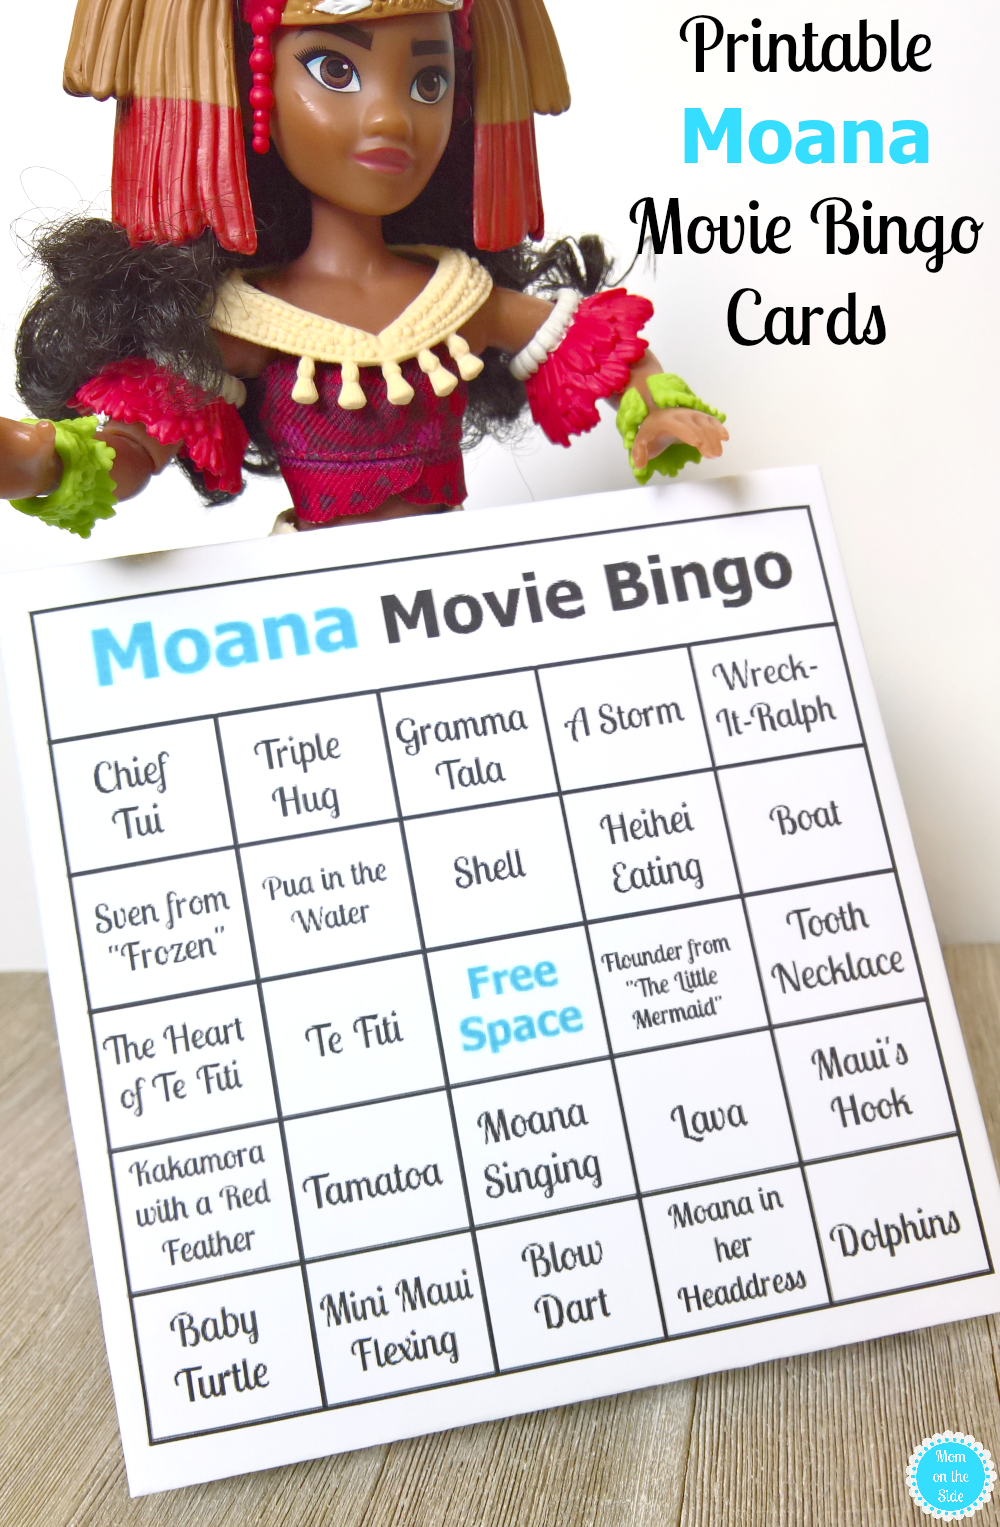 Printable Moana Movie Bingo Cards